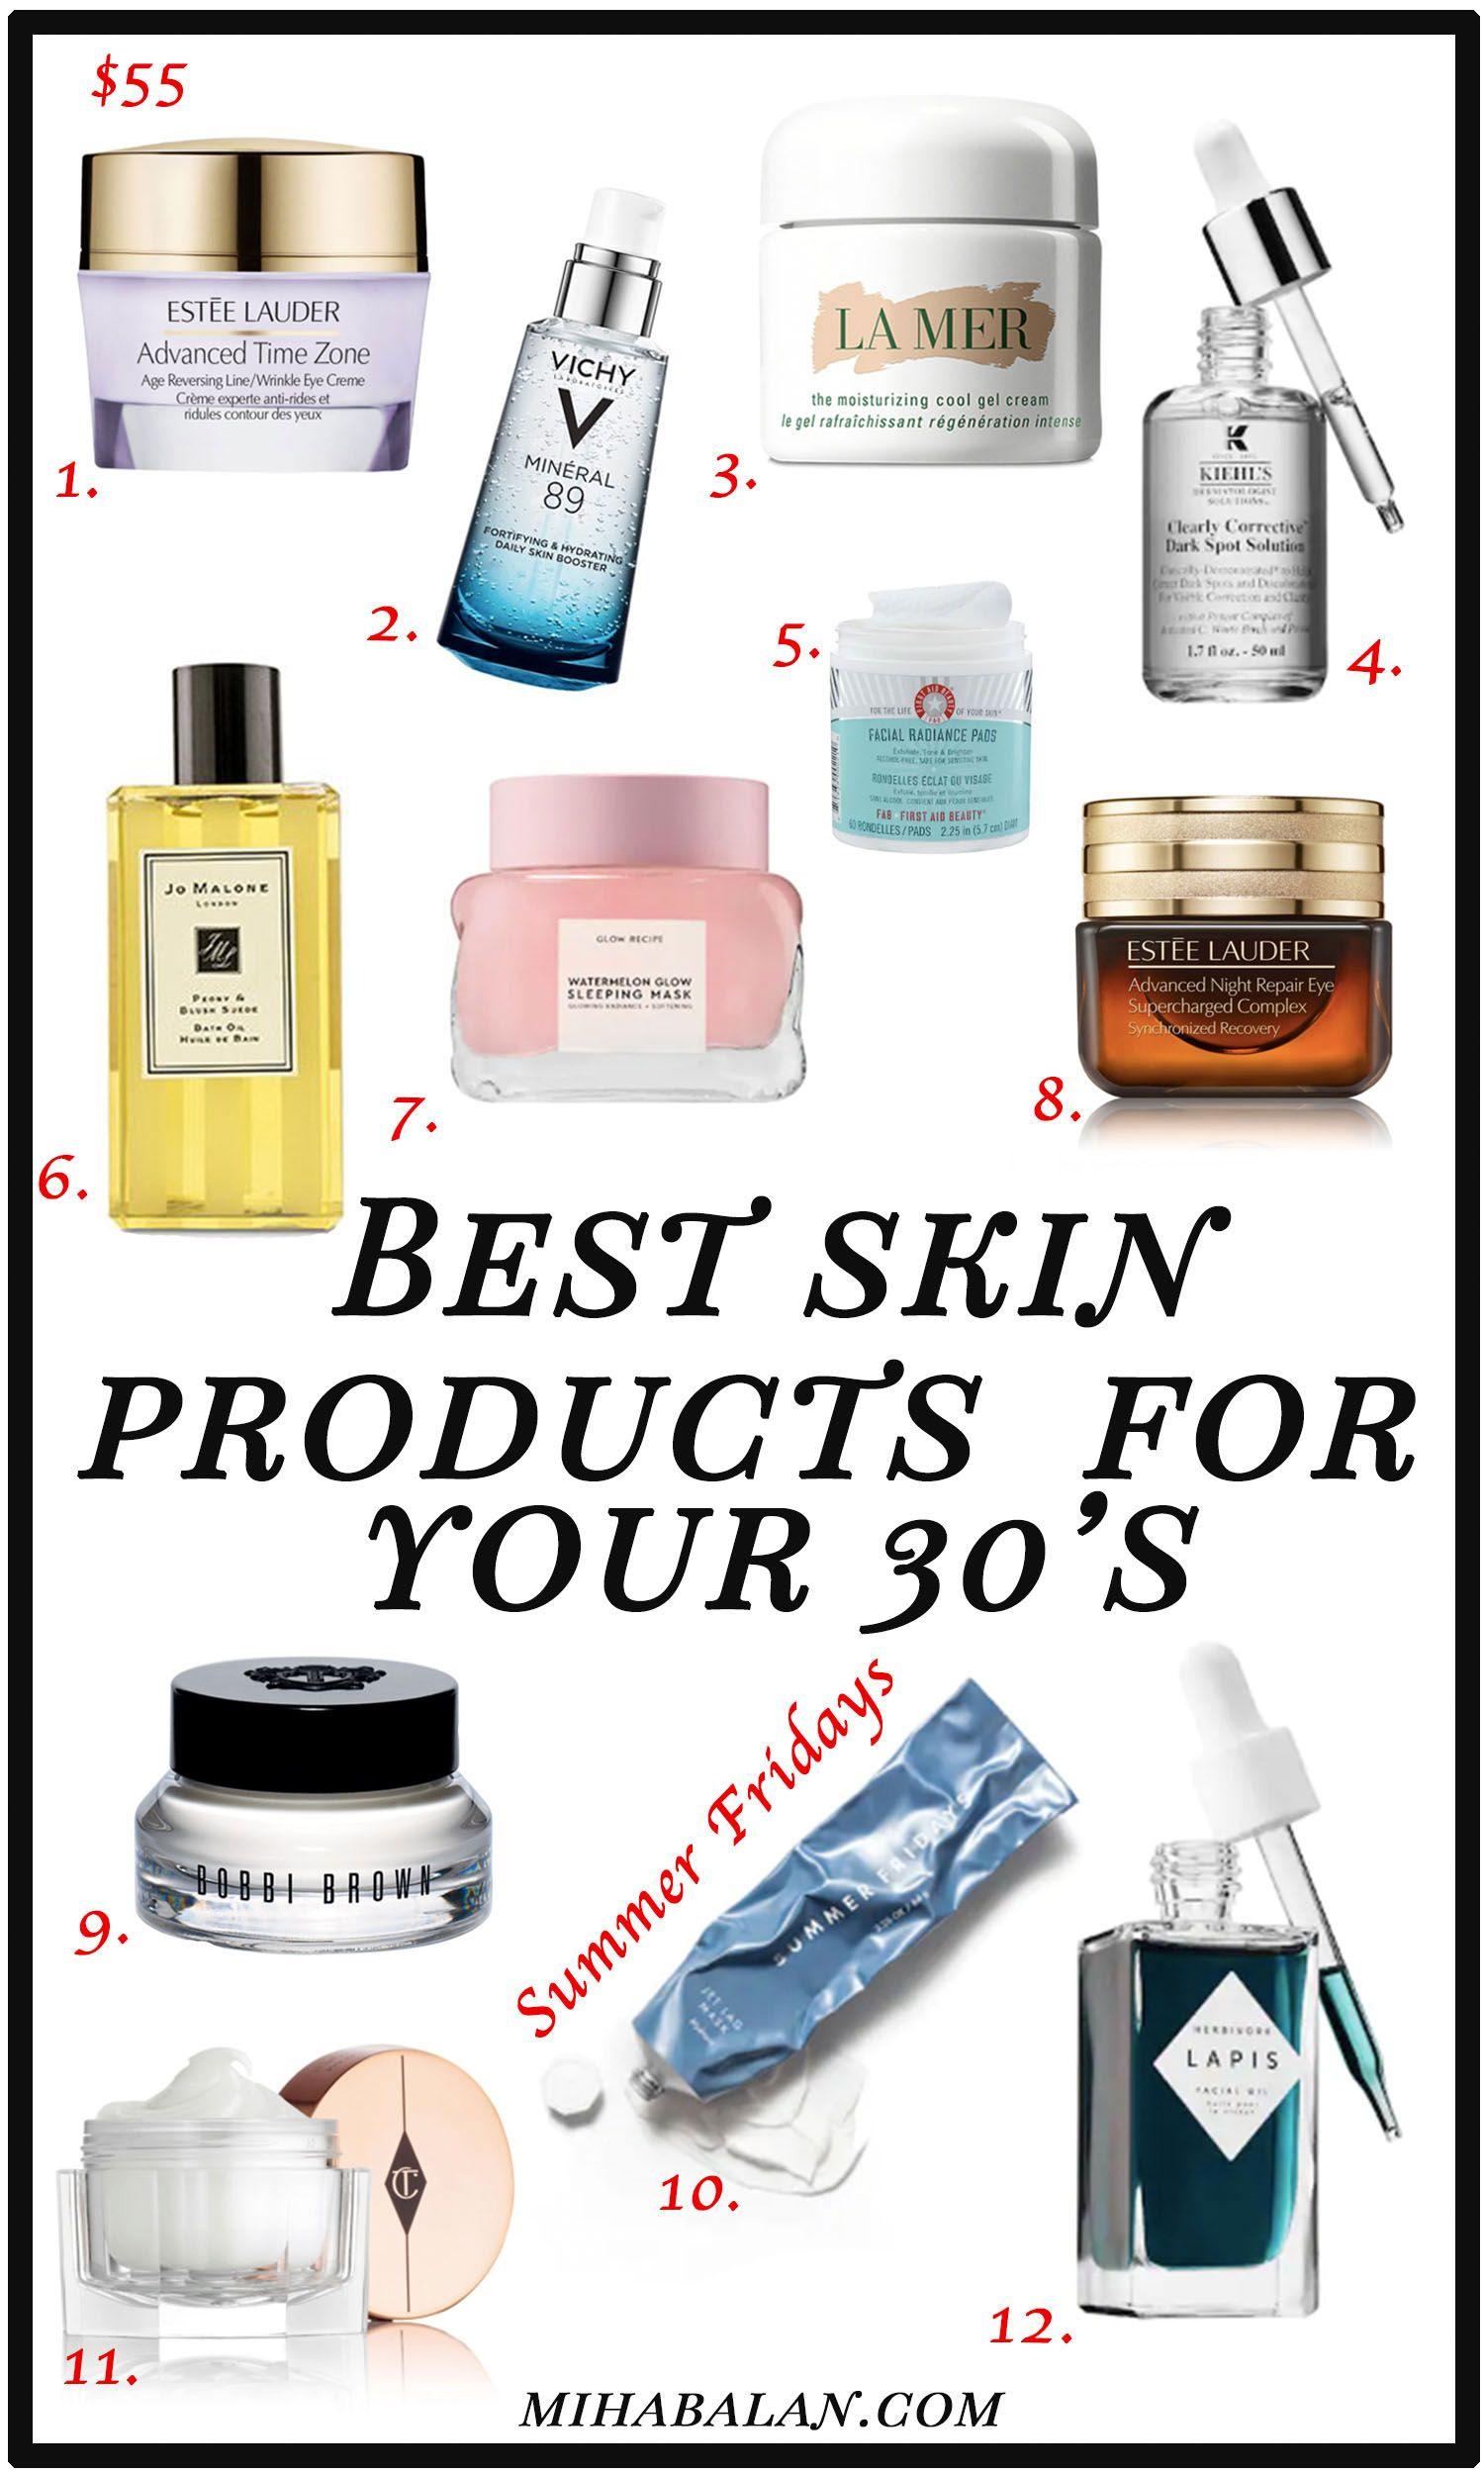 4 Ways To Deal With Your Skin In Your 30 S And The Best Products For It Be You Very Well Aging Skin Care Good Skin Anti Aging Skin Products